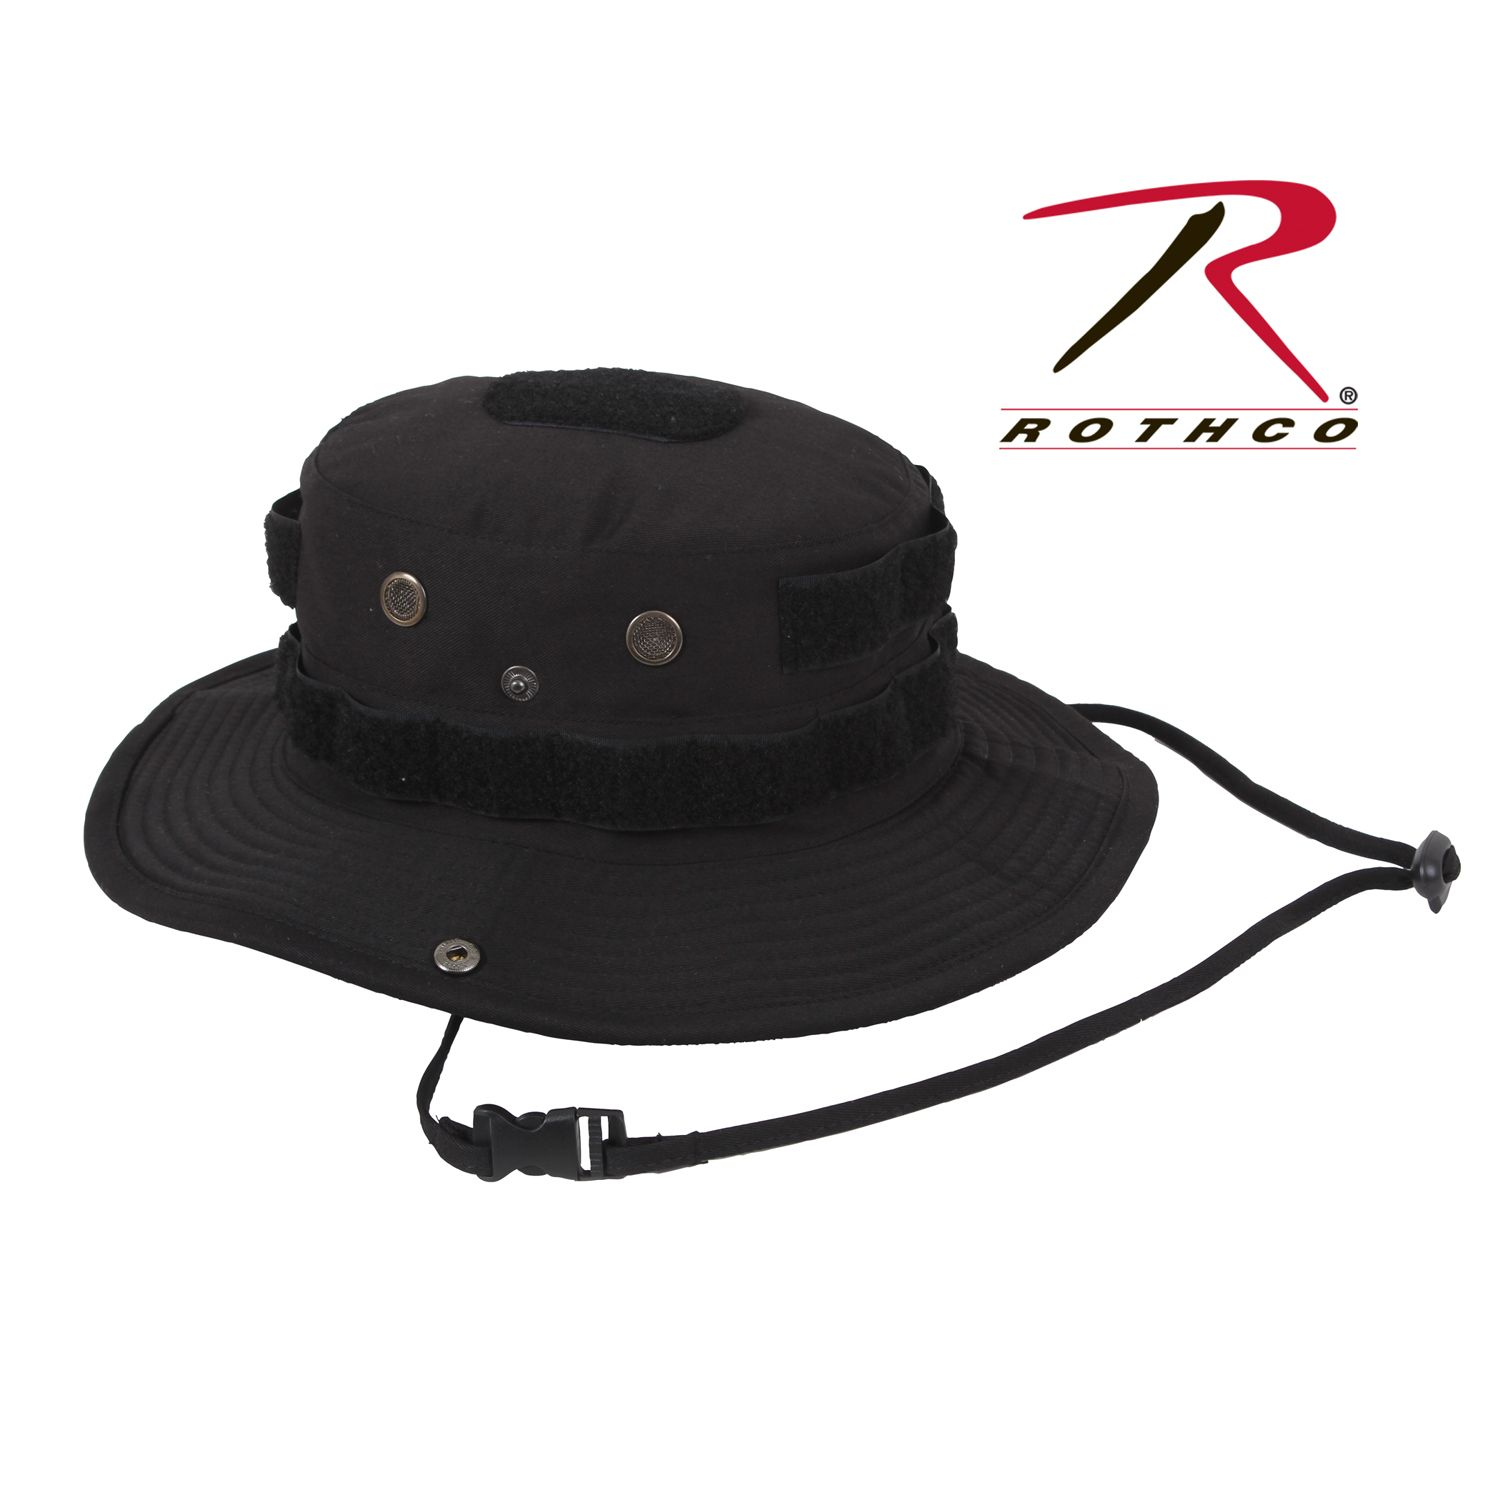 18aba1400dc Rothco Tactical Boonie Hat now in Black